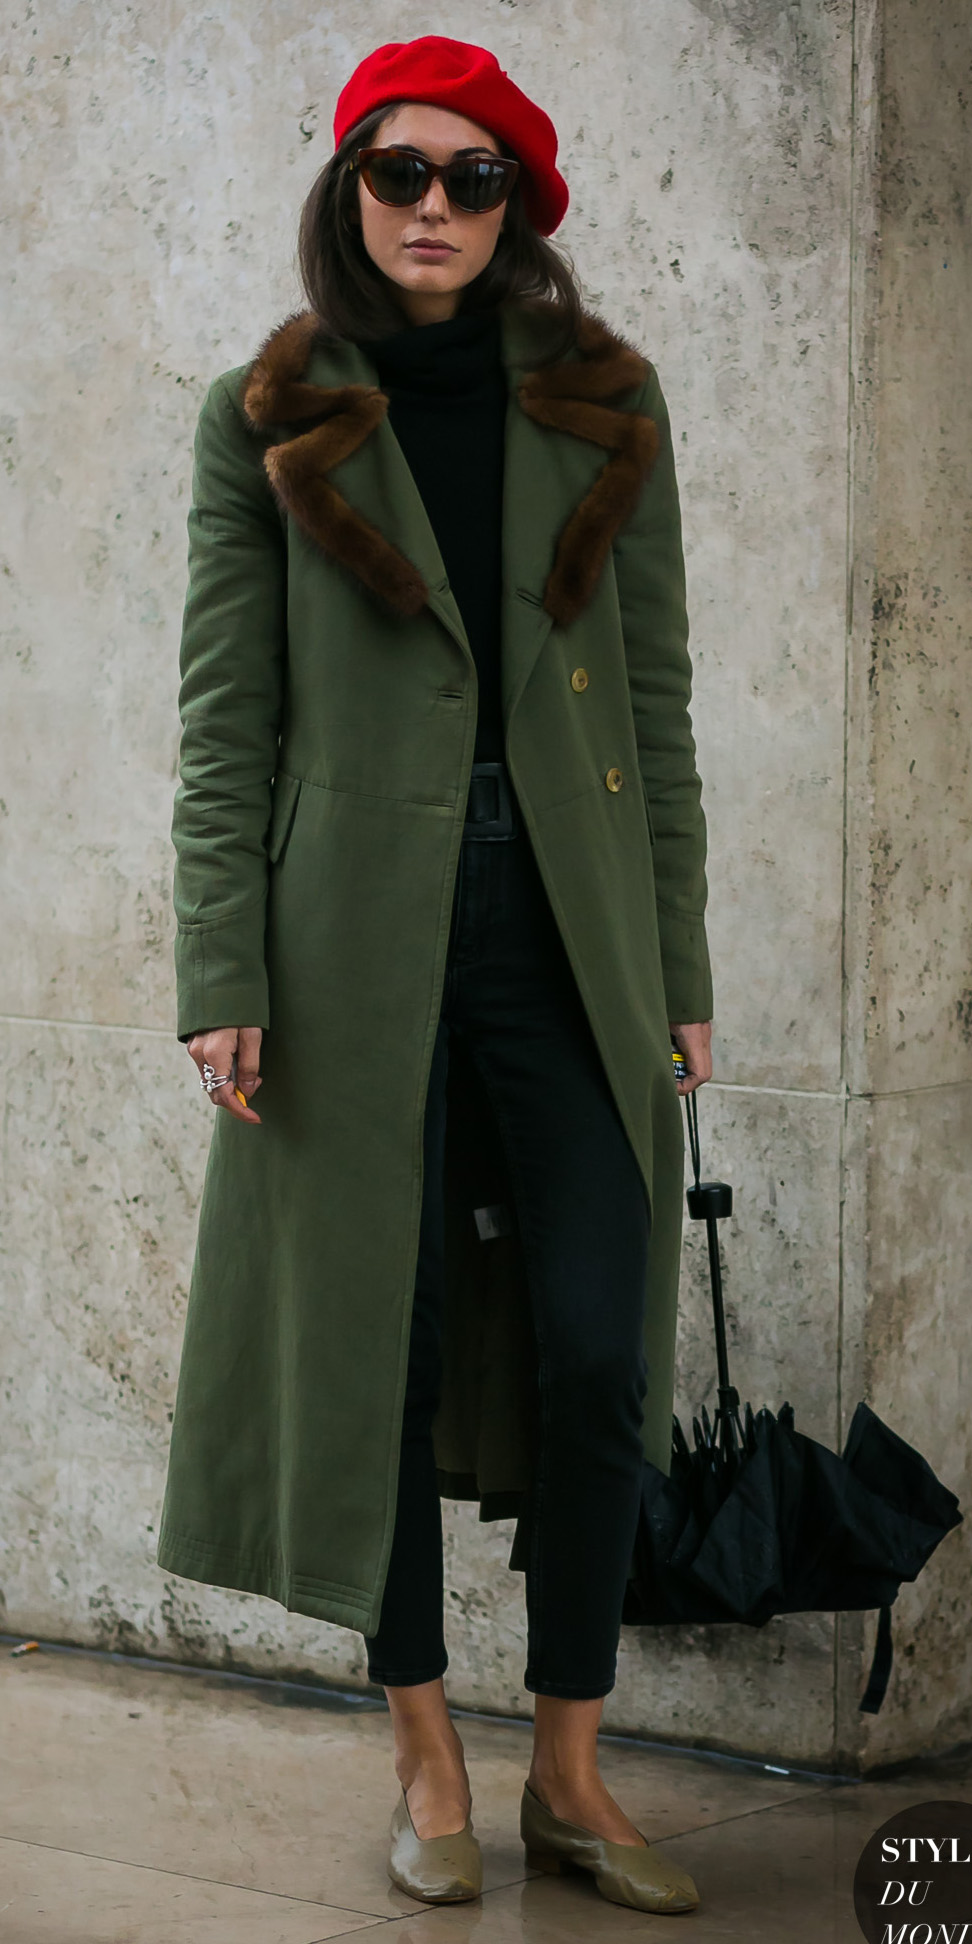 how-to-style-green-olive-jacket-coat-red-beret-hat-hairr-sun-tan-shoe-flats-black-sweater-turtleneck-fall-winter-fashion-lunch.jpg